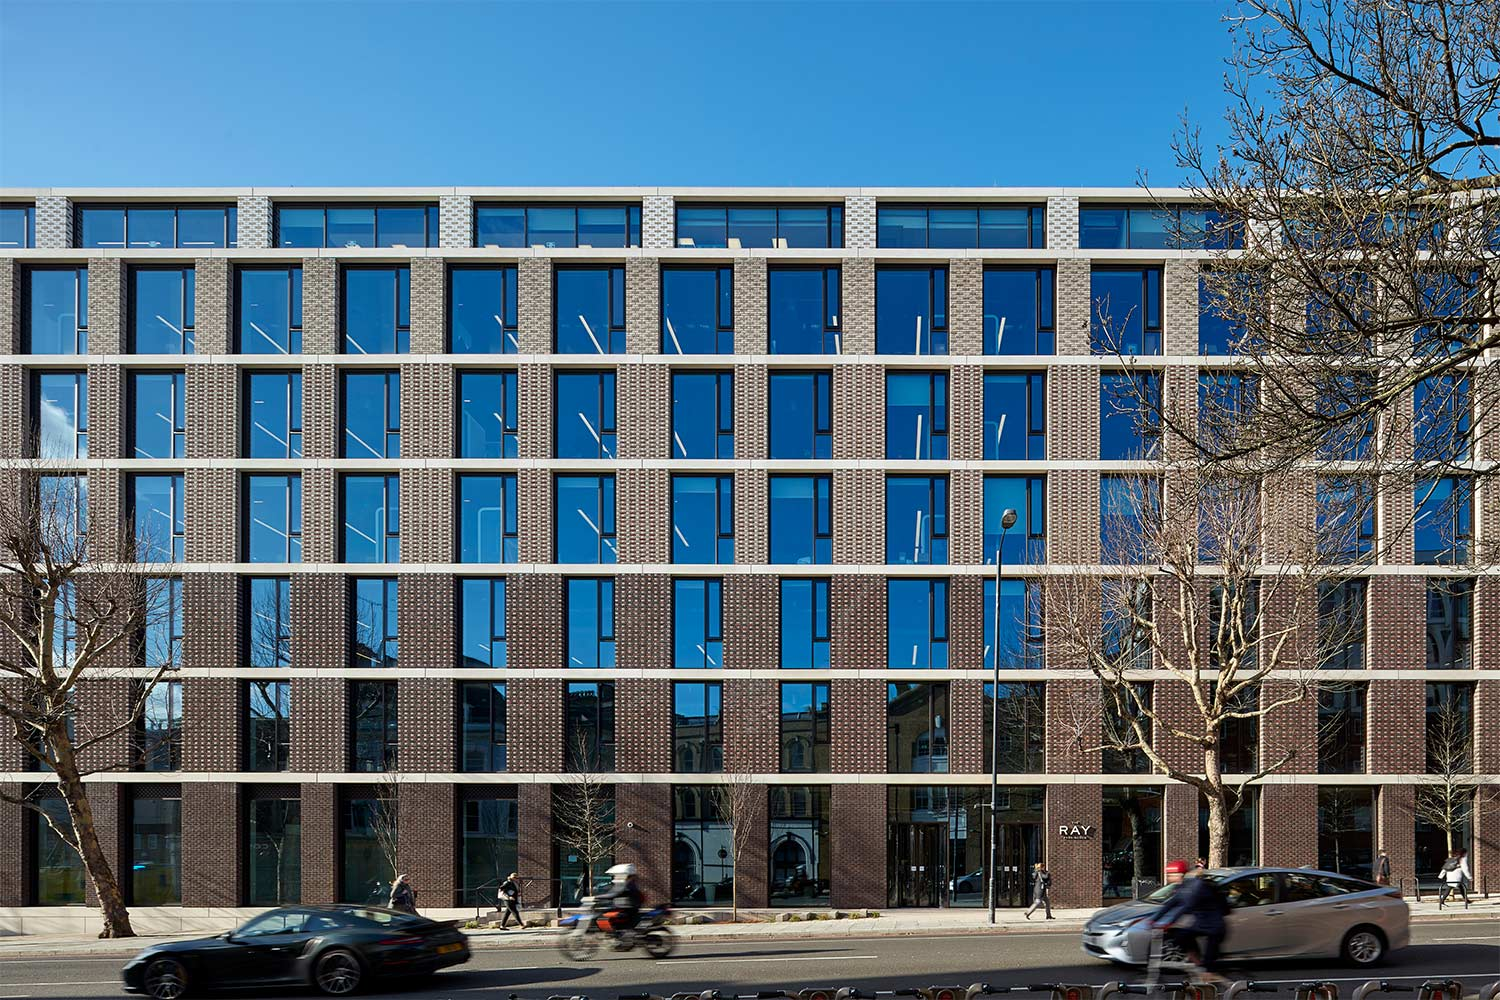 External view of The Ray office building on Farringdon Road, London EC1